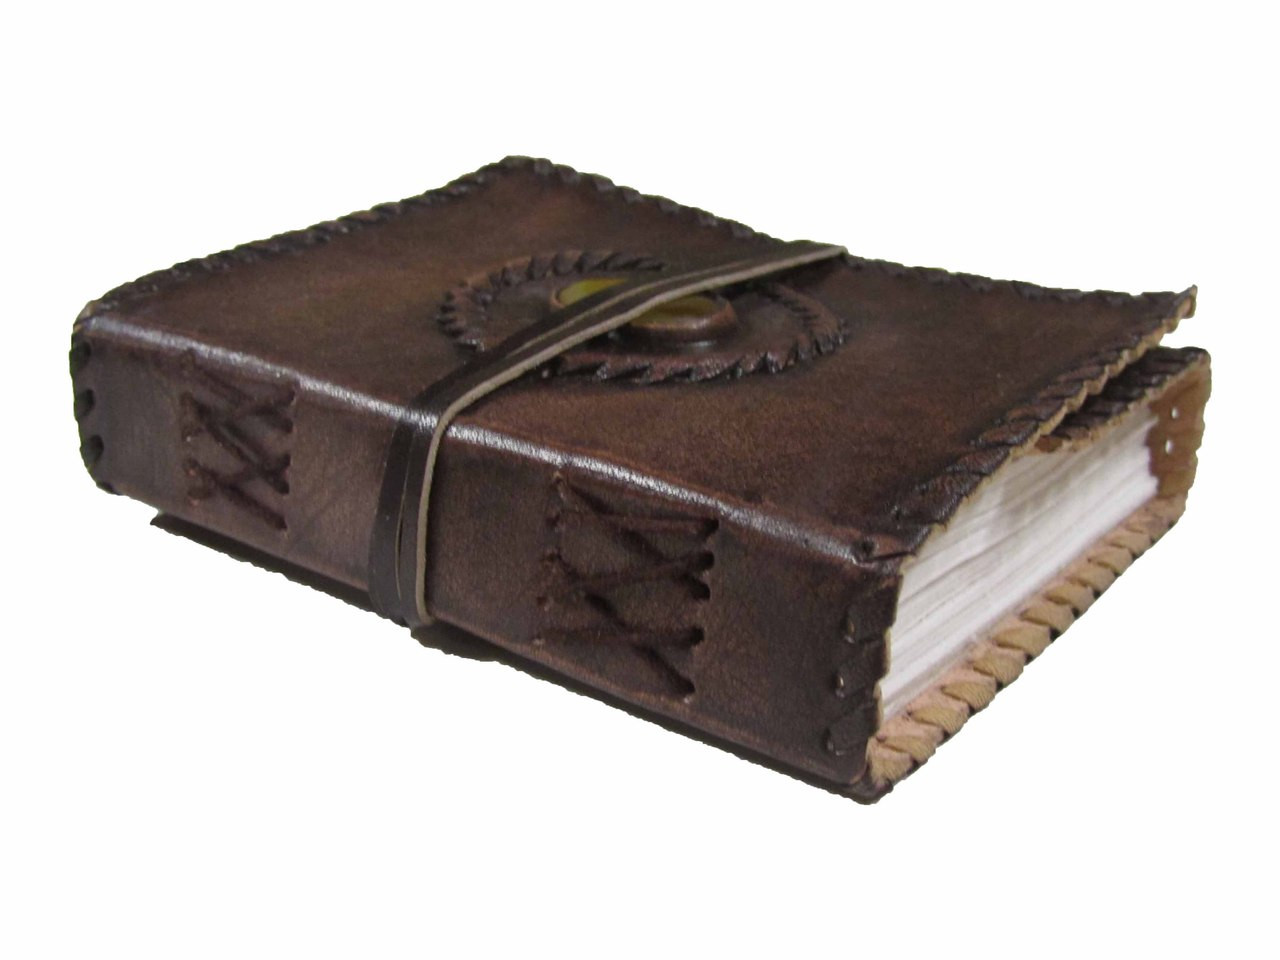 stitched leather journal with yellow stone centre piece embedding into cover - side angle